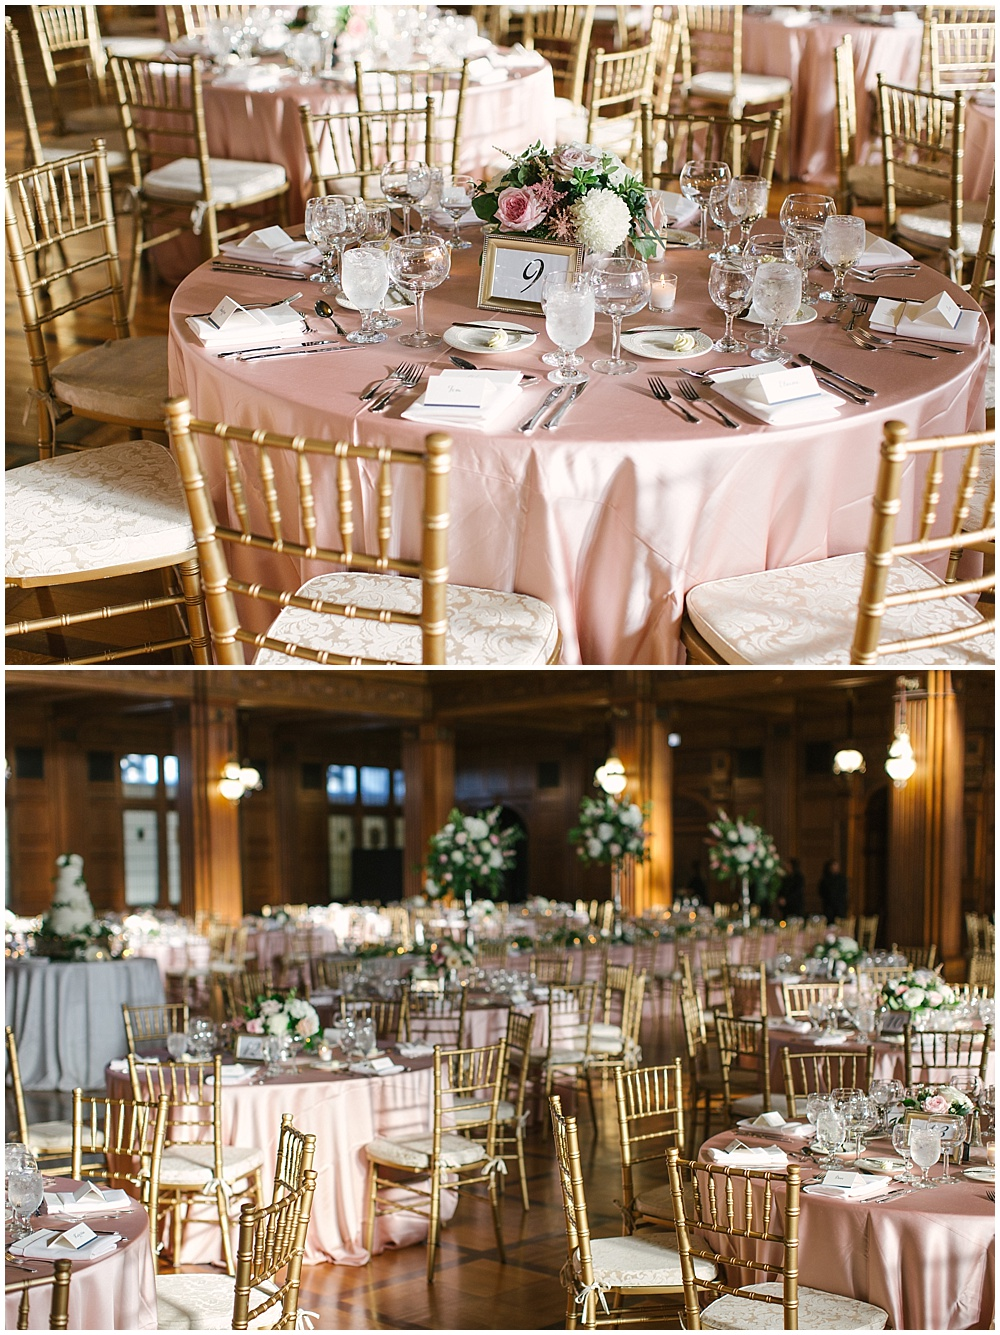 blush table linens; gold chiavari chairs; Navy + blush wedding; Scottish Rite Cathedral| Traci & Troy Photography and Jessica Dum Wedding Coordination